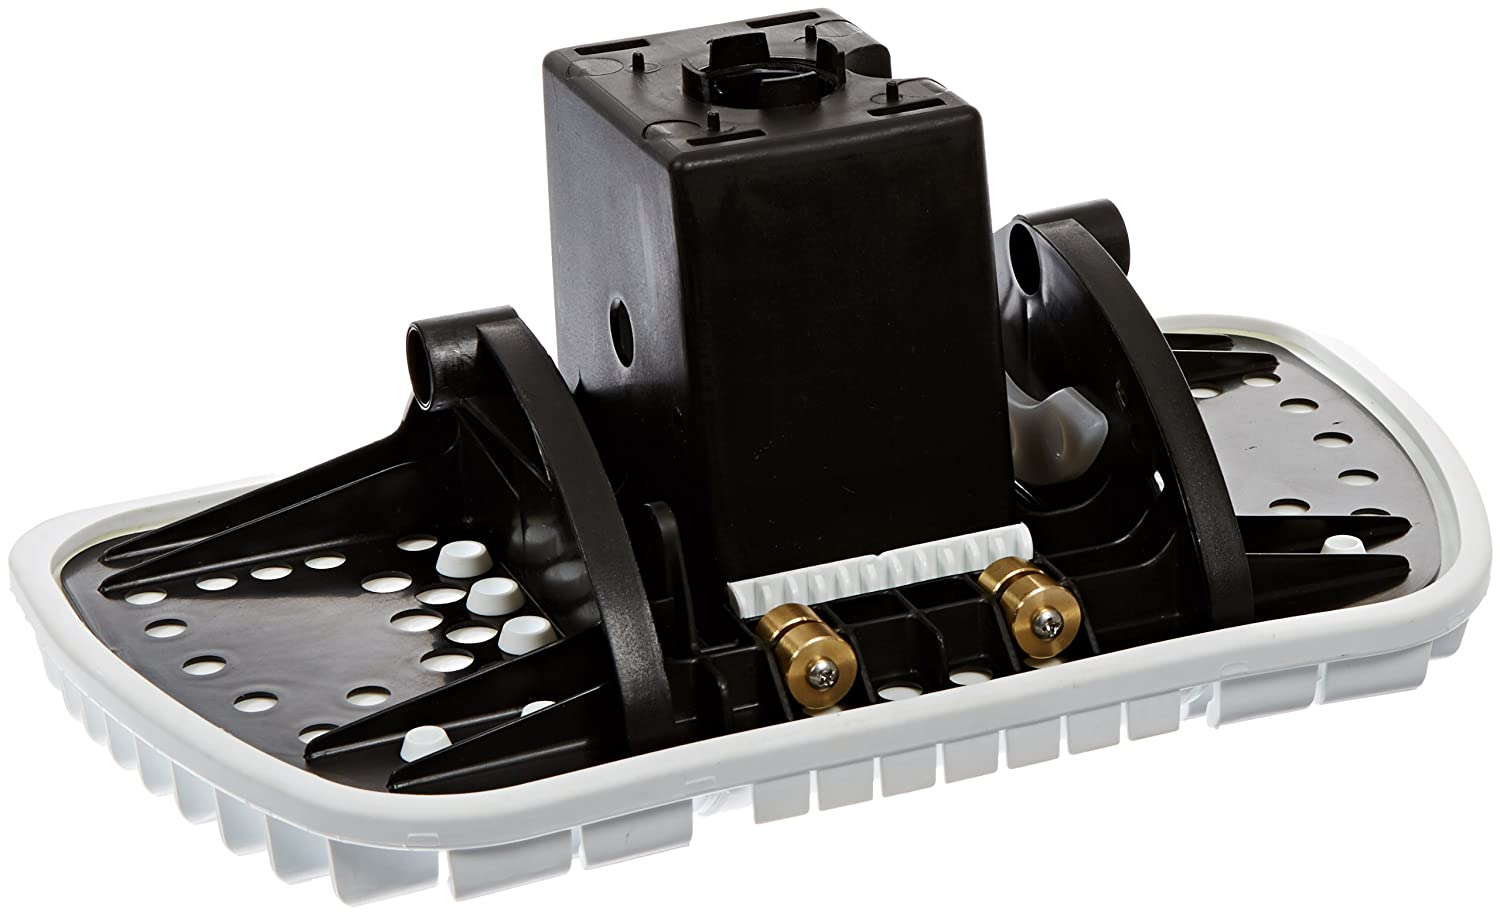 Pentair 41201-0242W White Chassis with Pad Replacement Kreepy Krauly SandShark Automatic Pool Cleaner